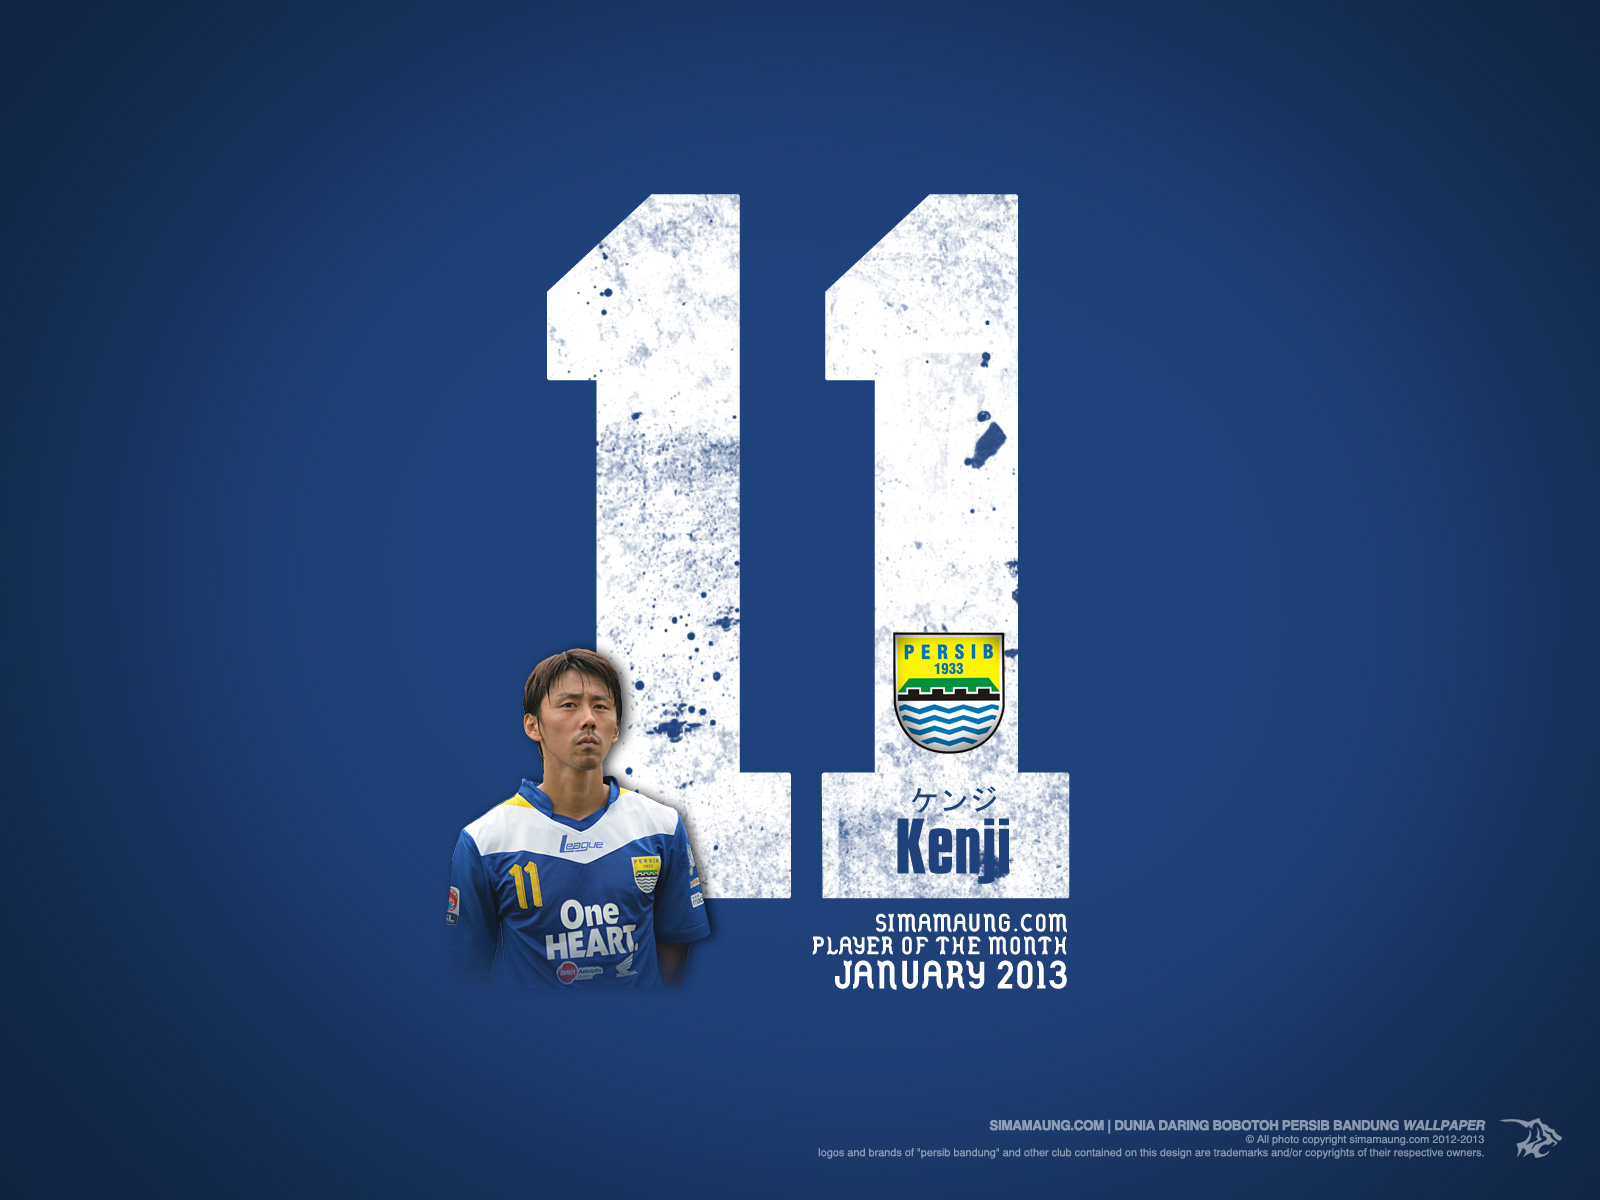 Persib Bandung Wallpapers Posted By Samantha Walker